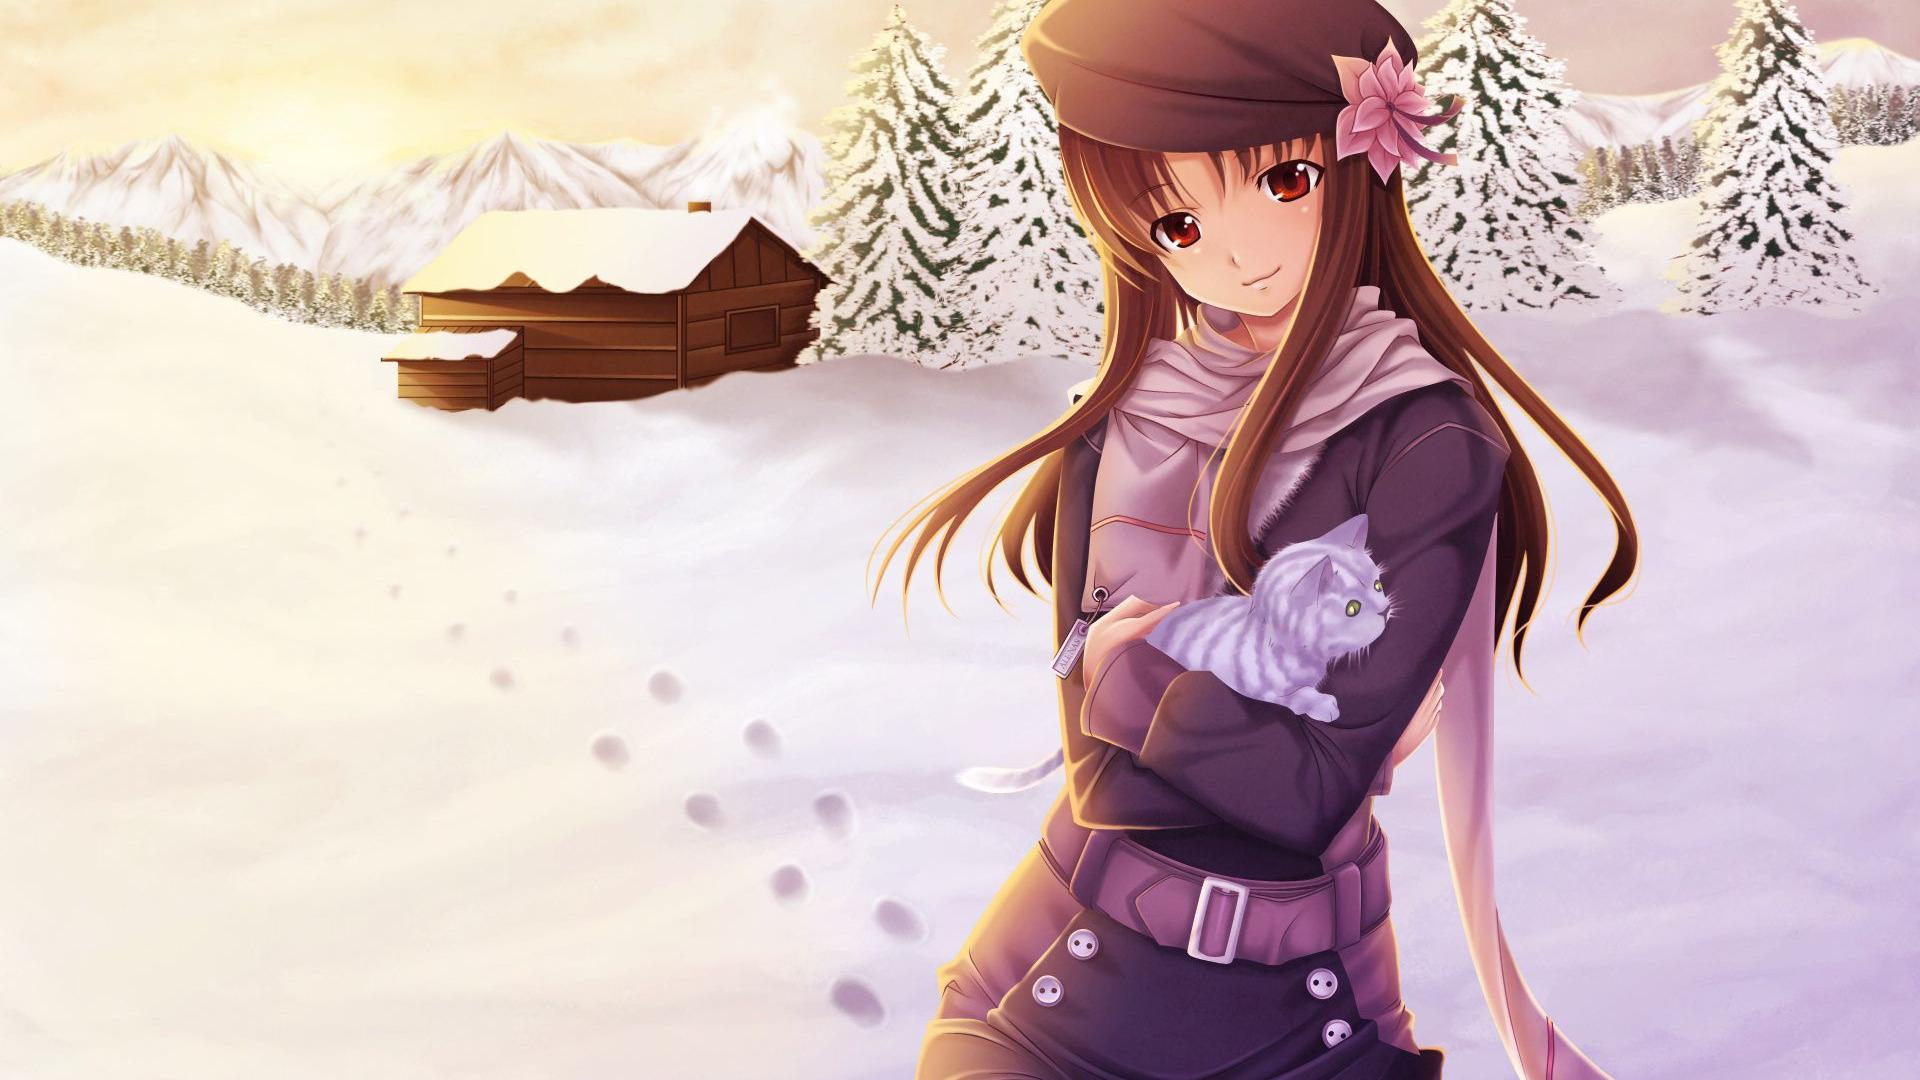 Wallpapers Of Animated Girls Sf Wallpaper